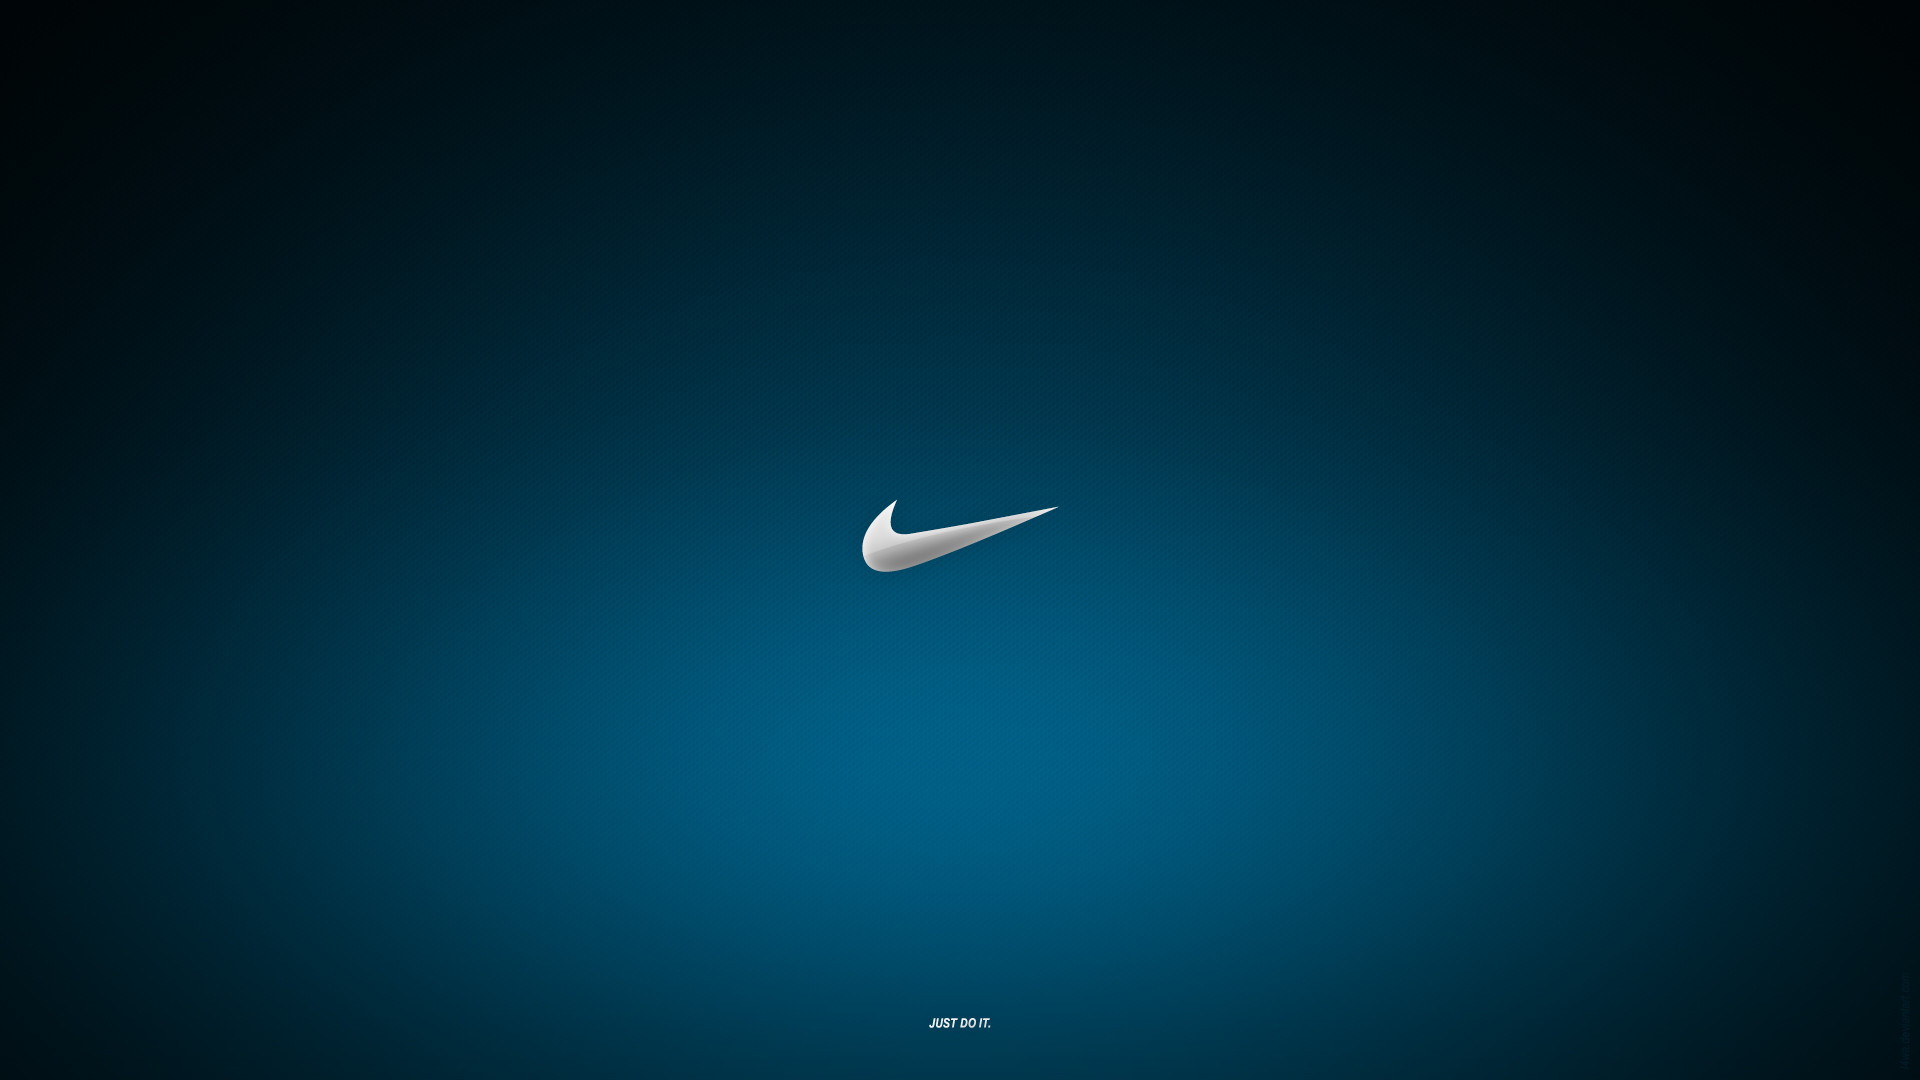 S Logo Wallpaper Free Download Nike Logo Wallpaper HD...